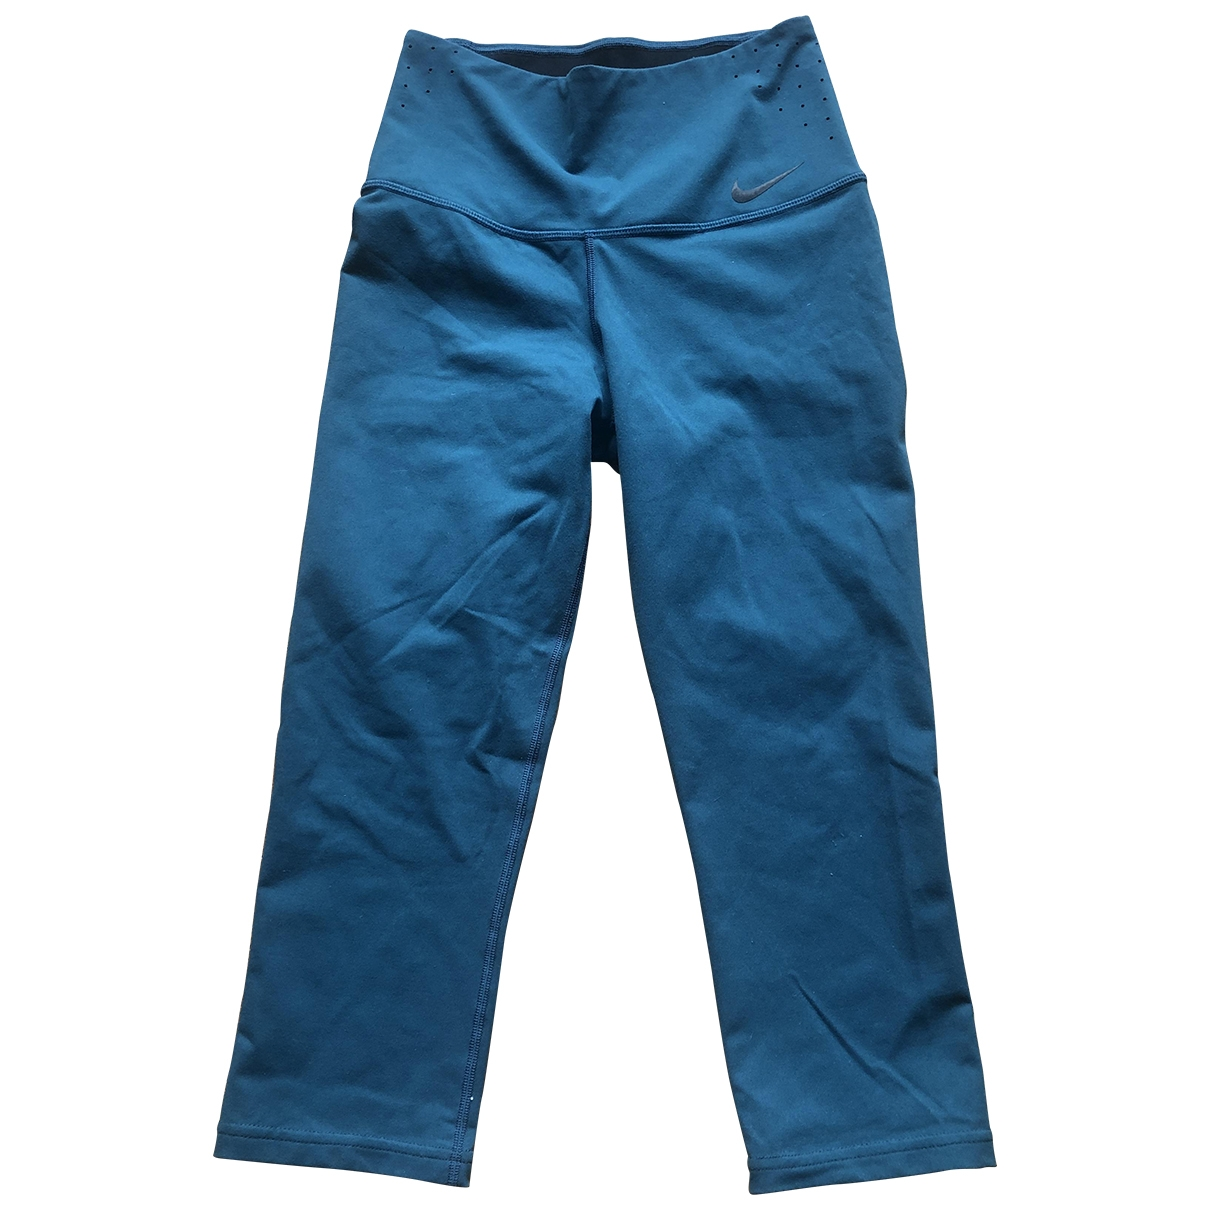 Nike \N Blue Trousers for Women M International